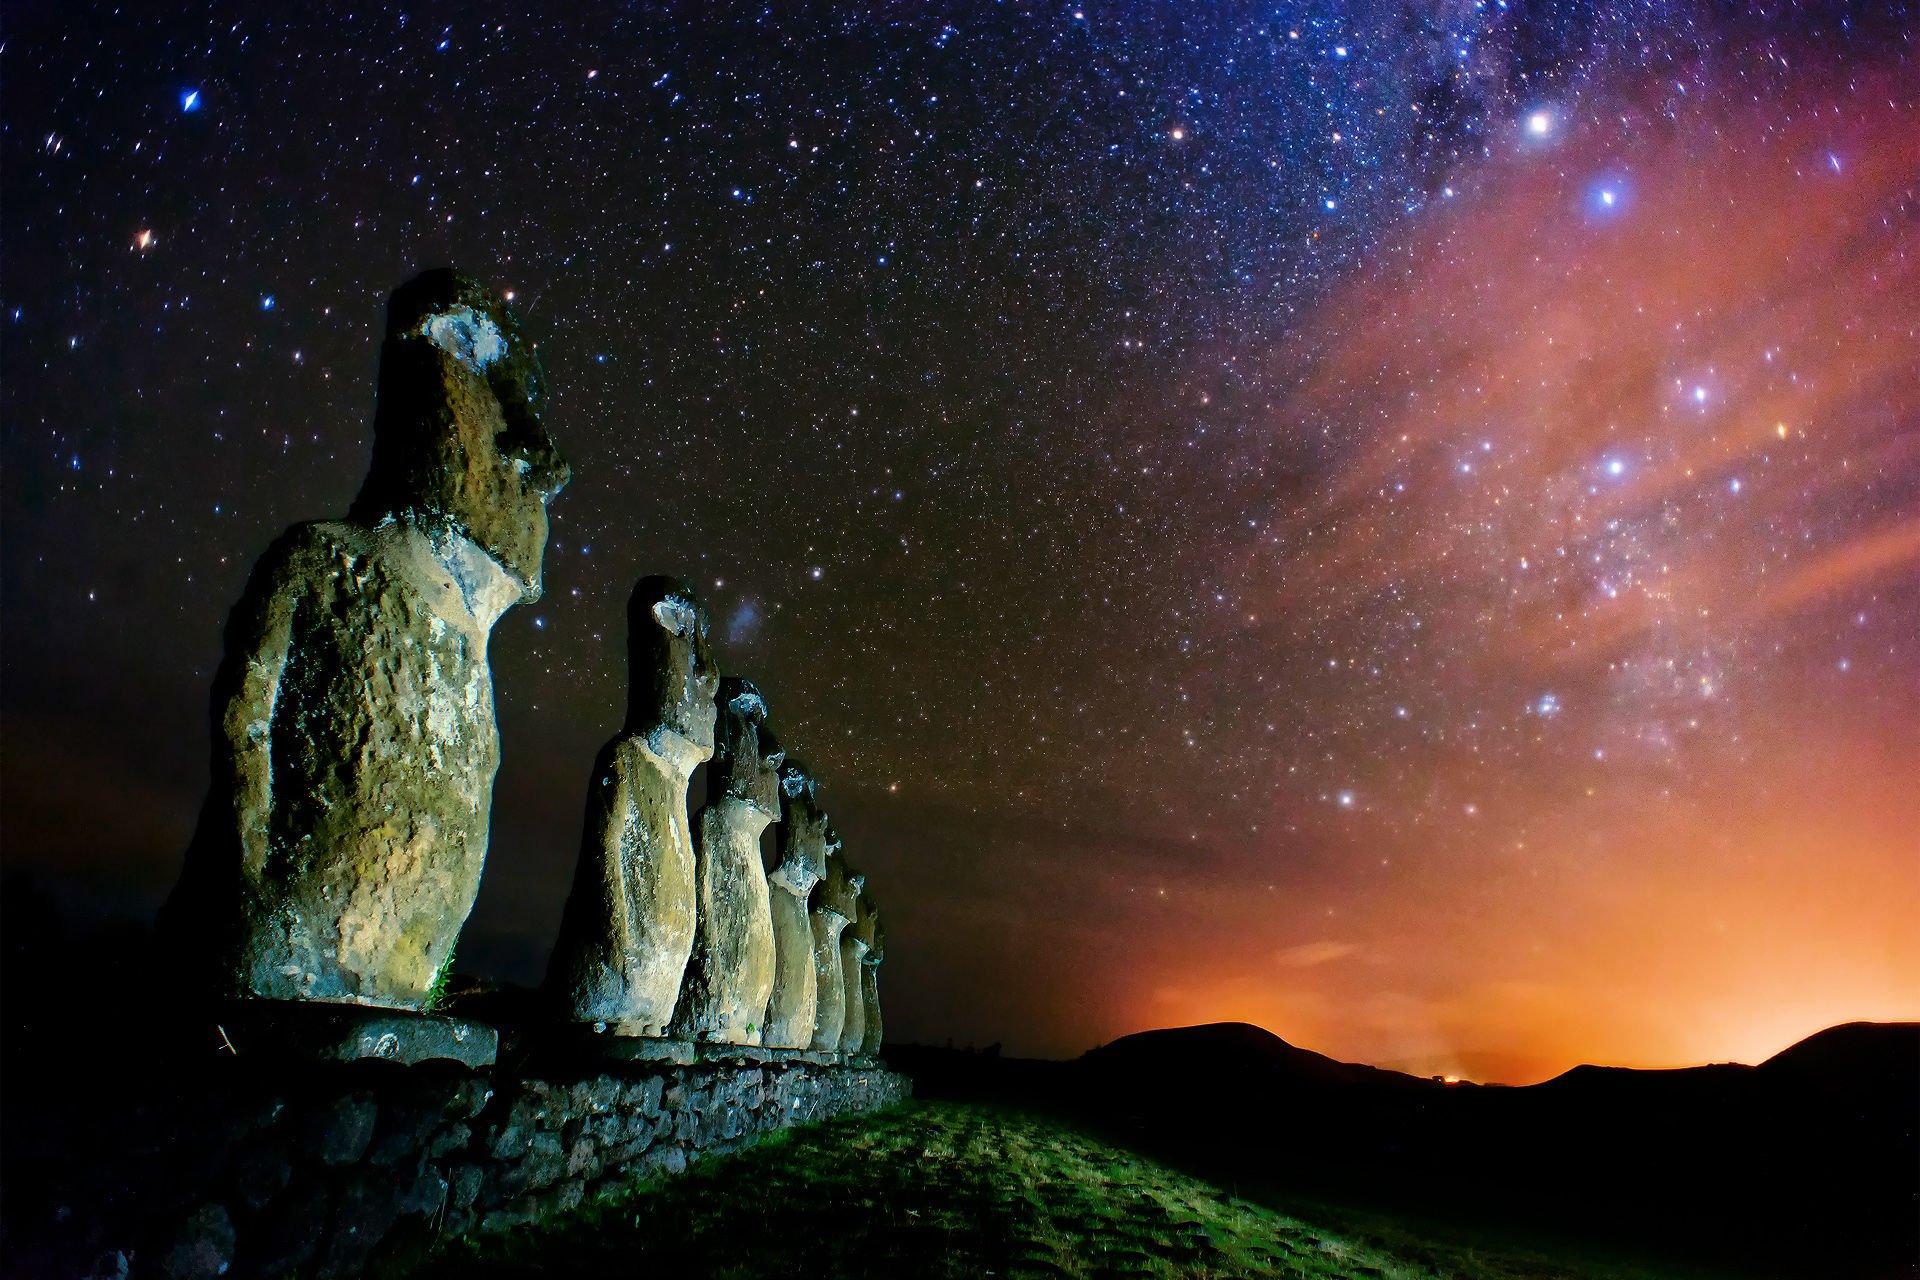 Moai Computer Wallpapers Desktop Backgrounds 1920x1280 1920x1280